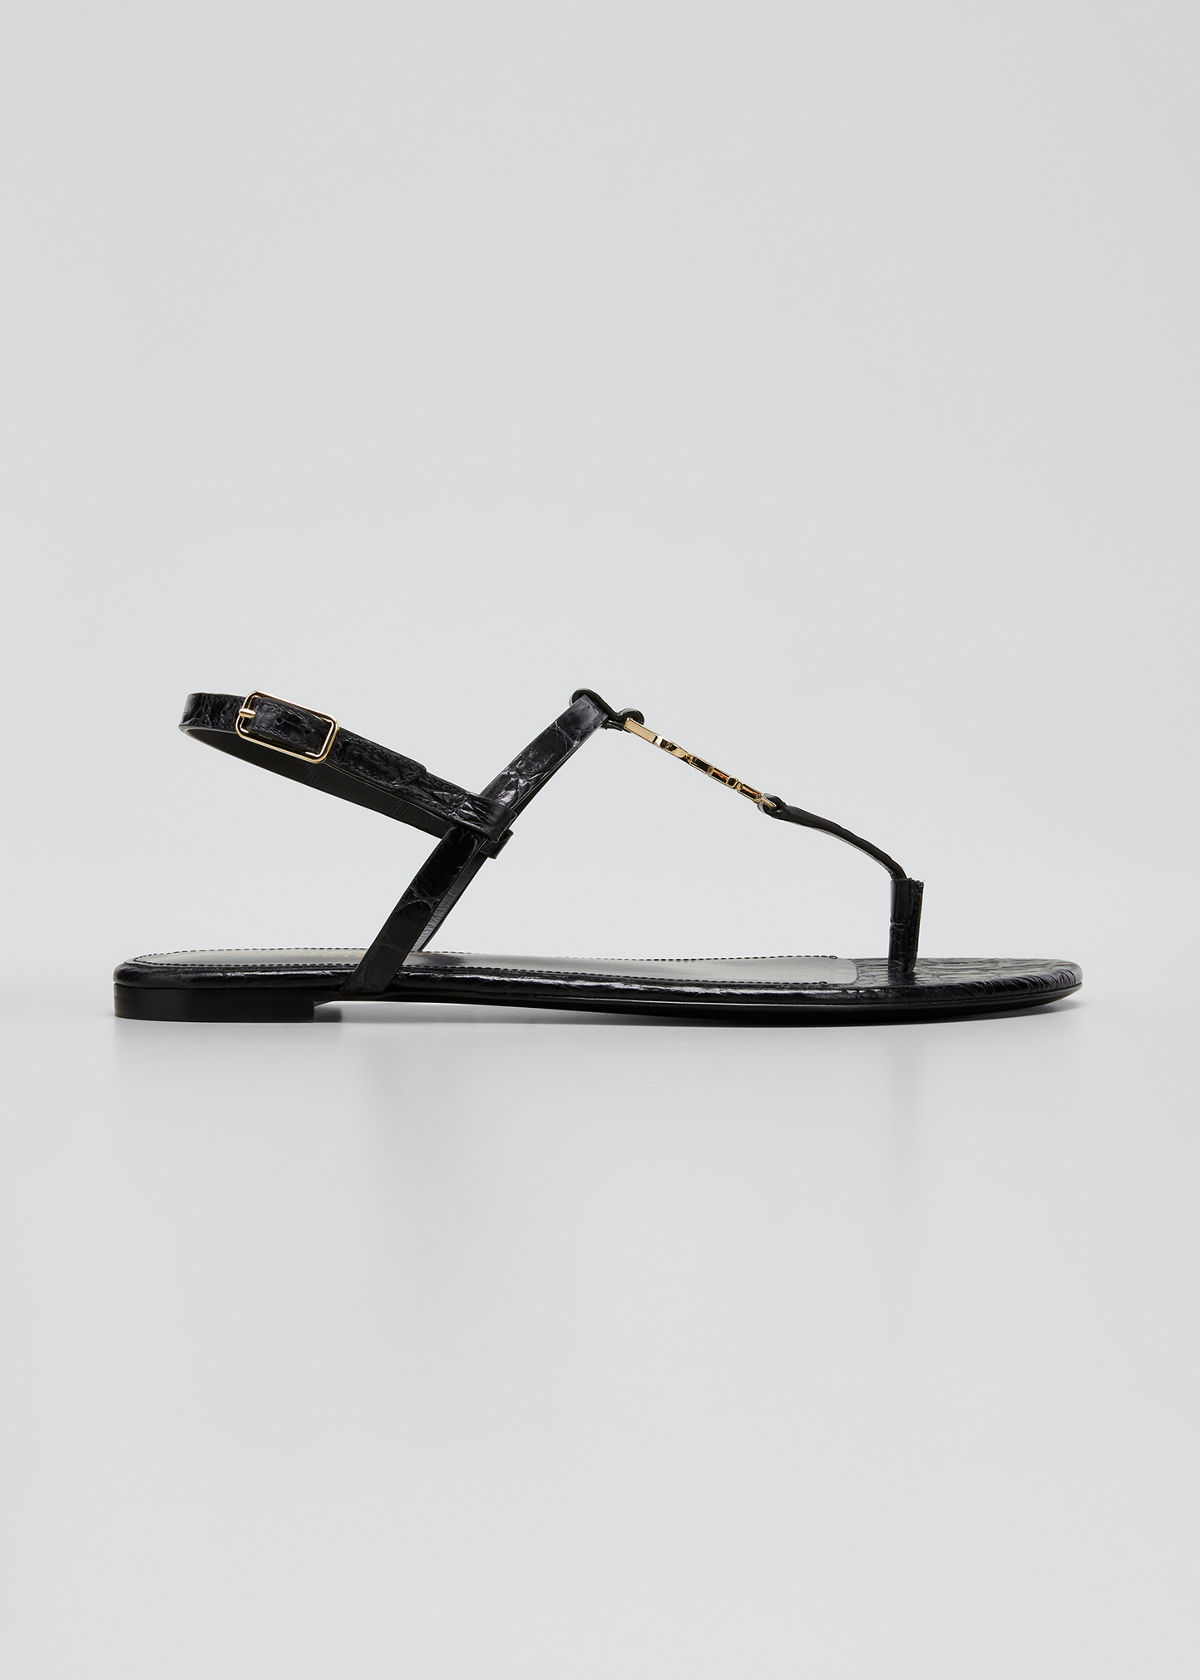 Saint Laurent CASSANDRA MOCK-CROC YSL SLINGBACK SANDALS